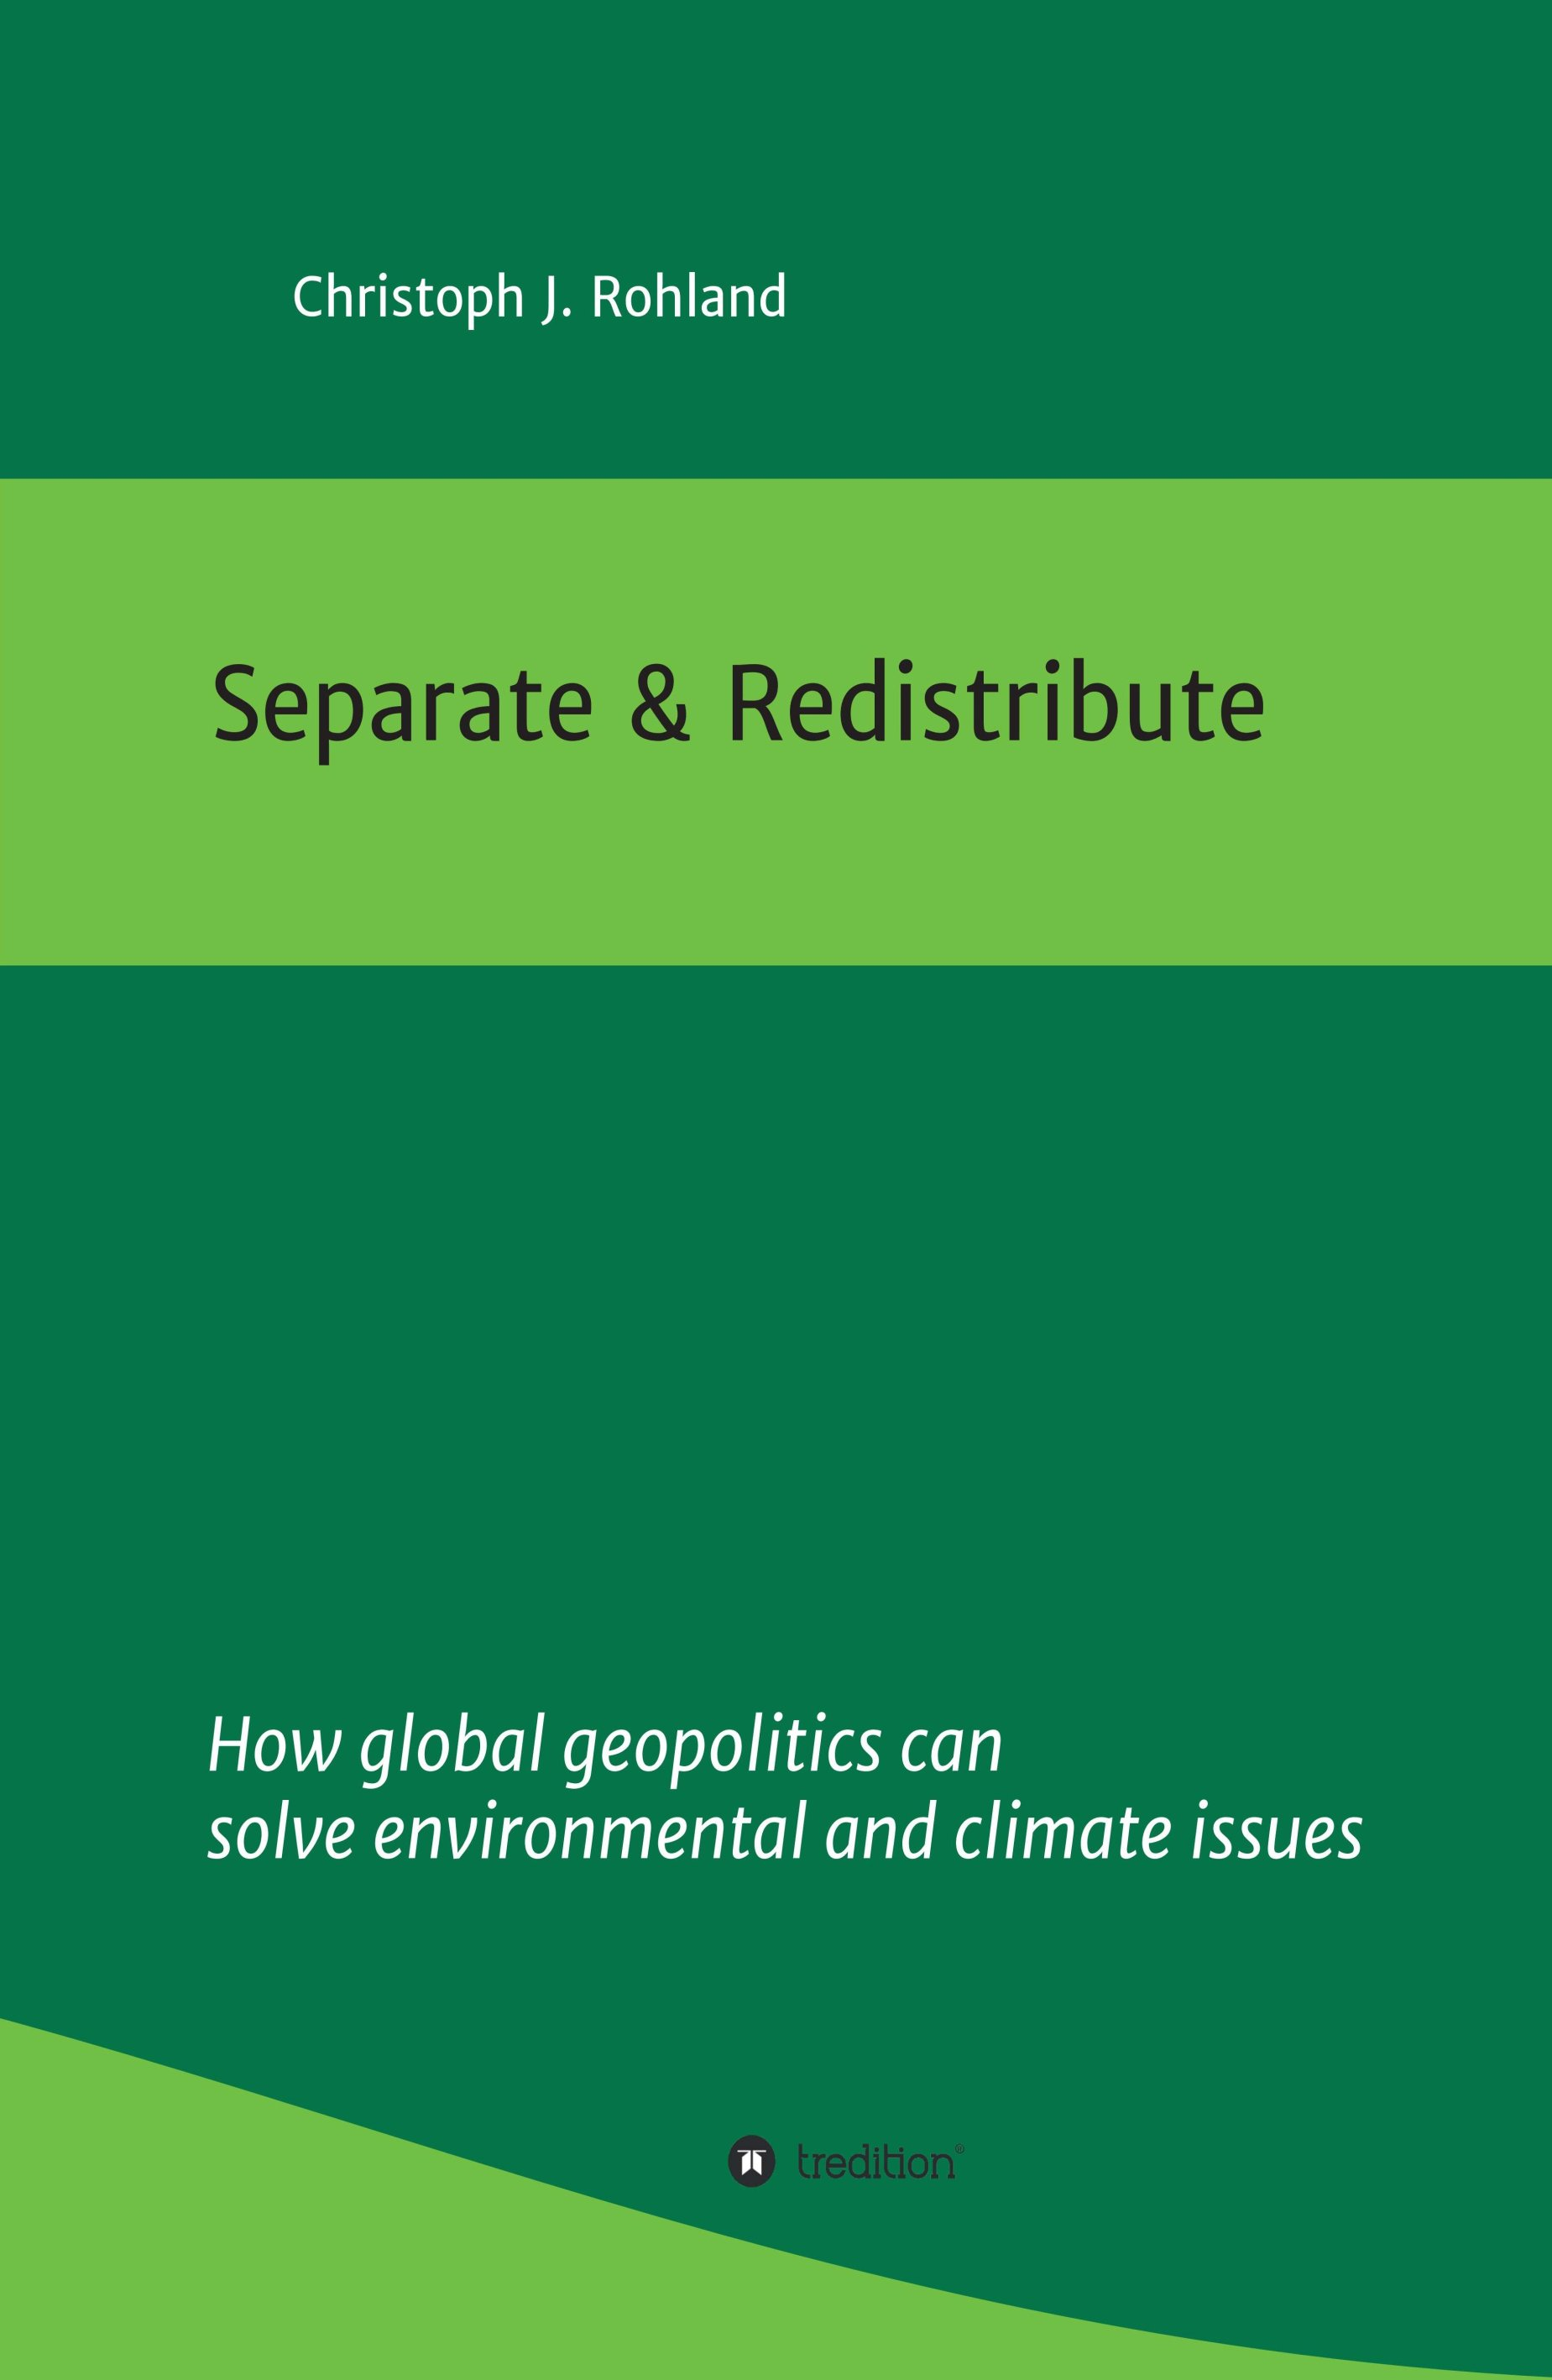 Separate & Redistribute - 7.6 billion people for a centralist climate movement